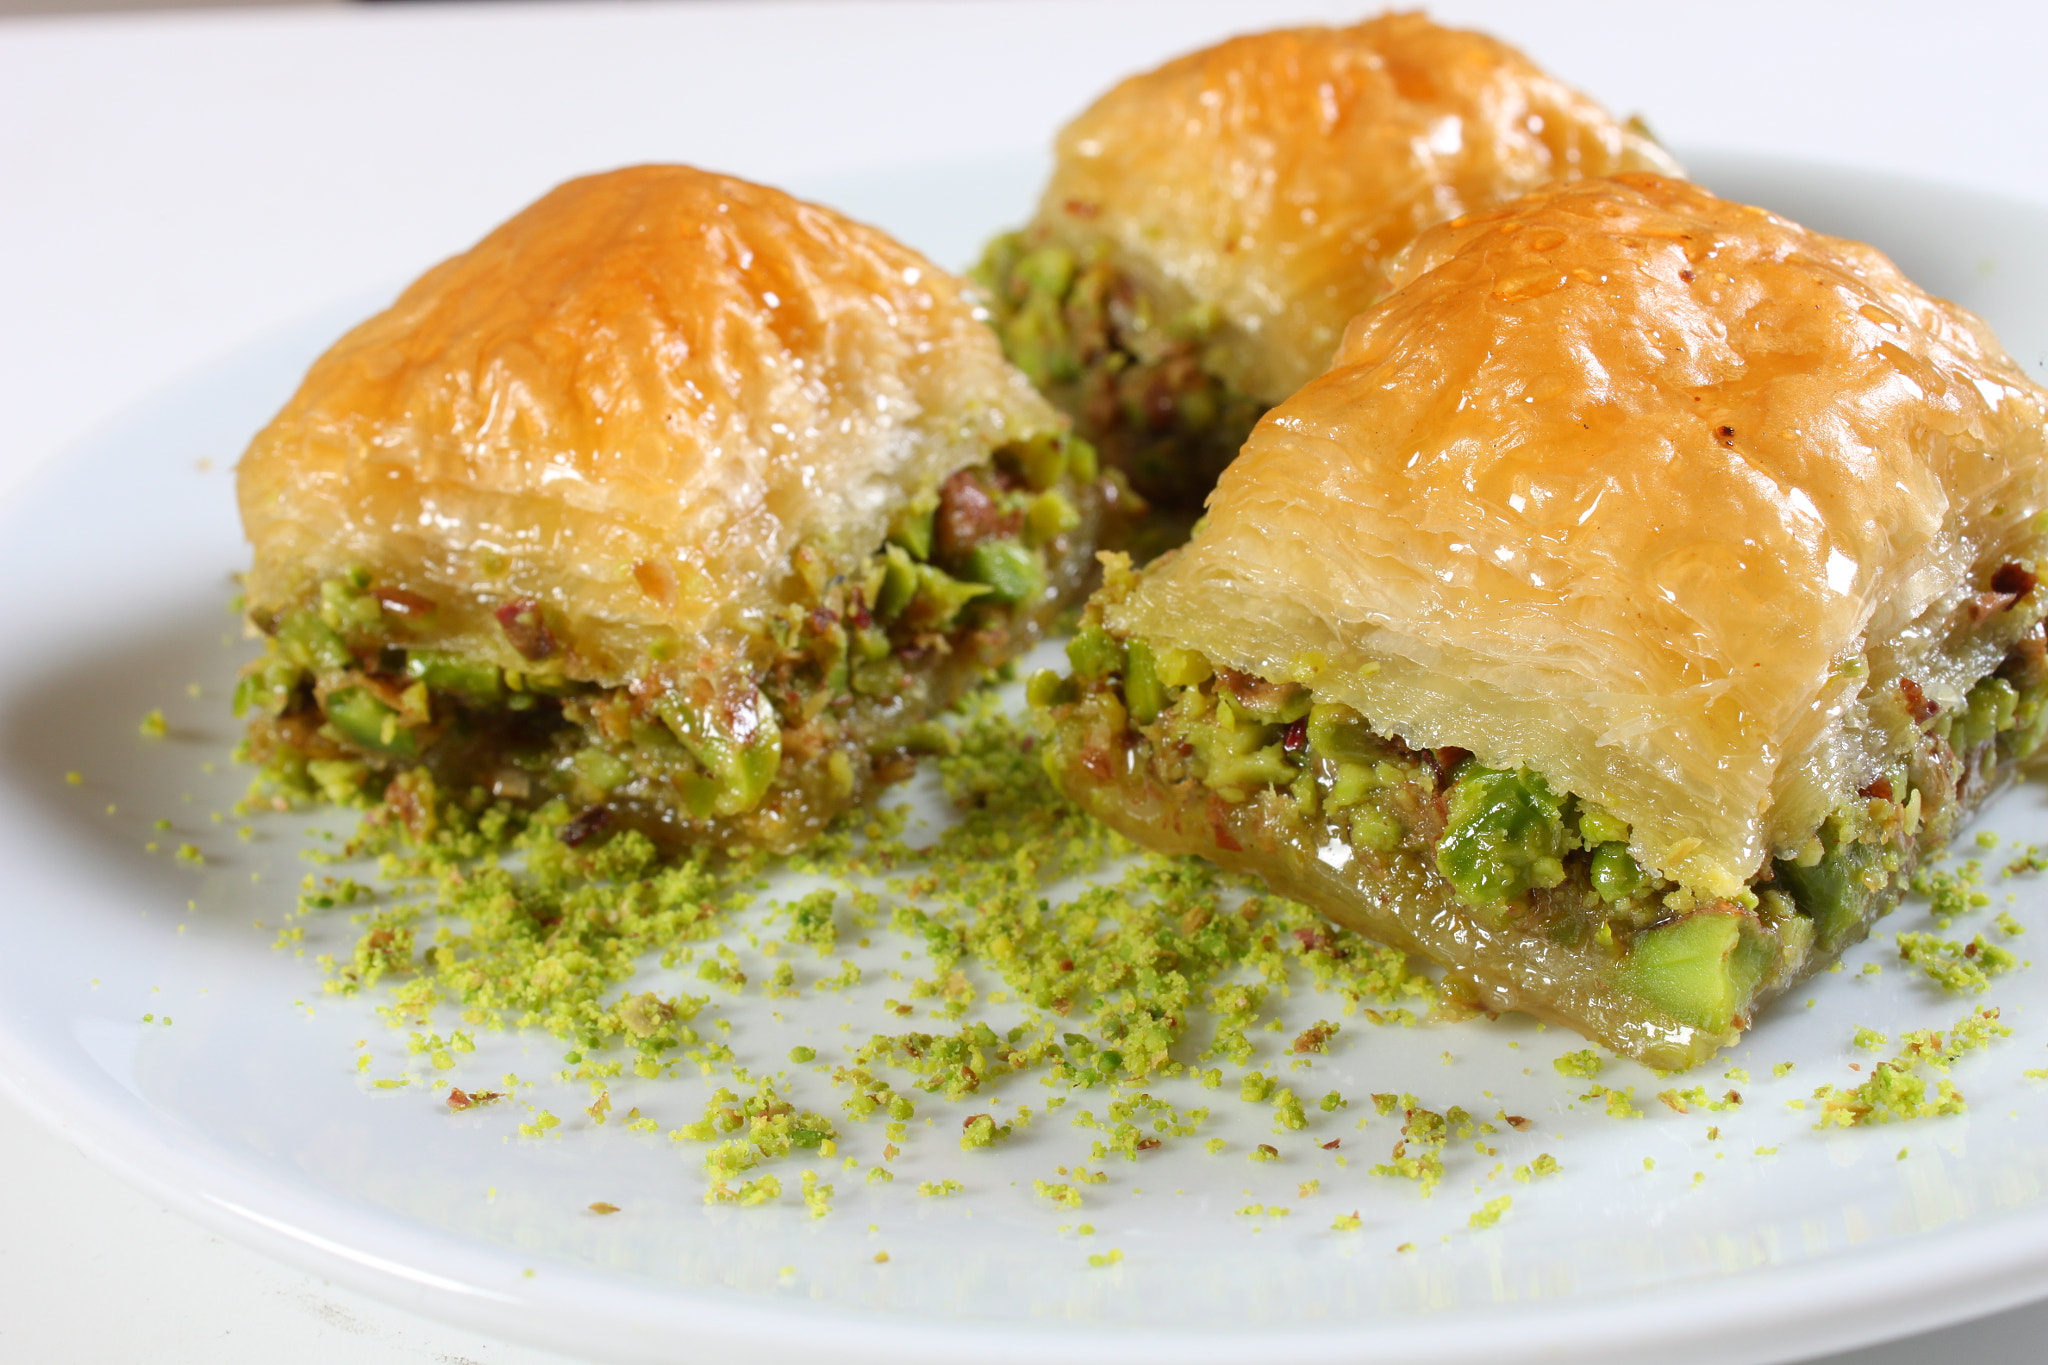 Baklava by Salih Karadeniz - Photo 15530215 - 500px